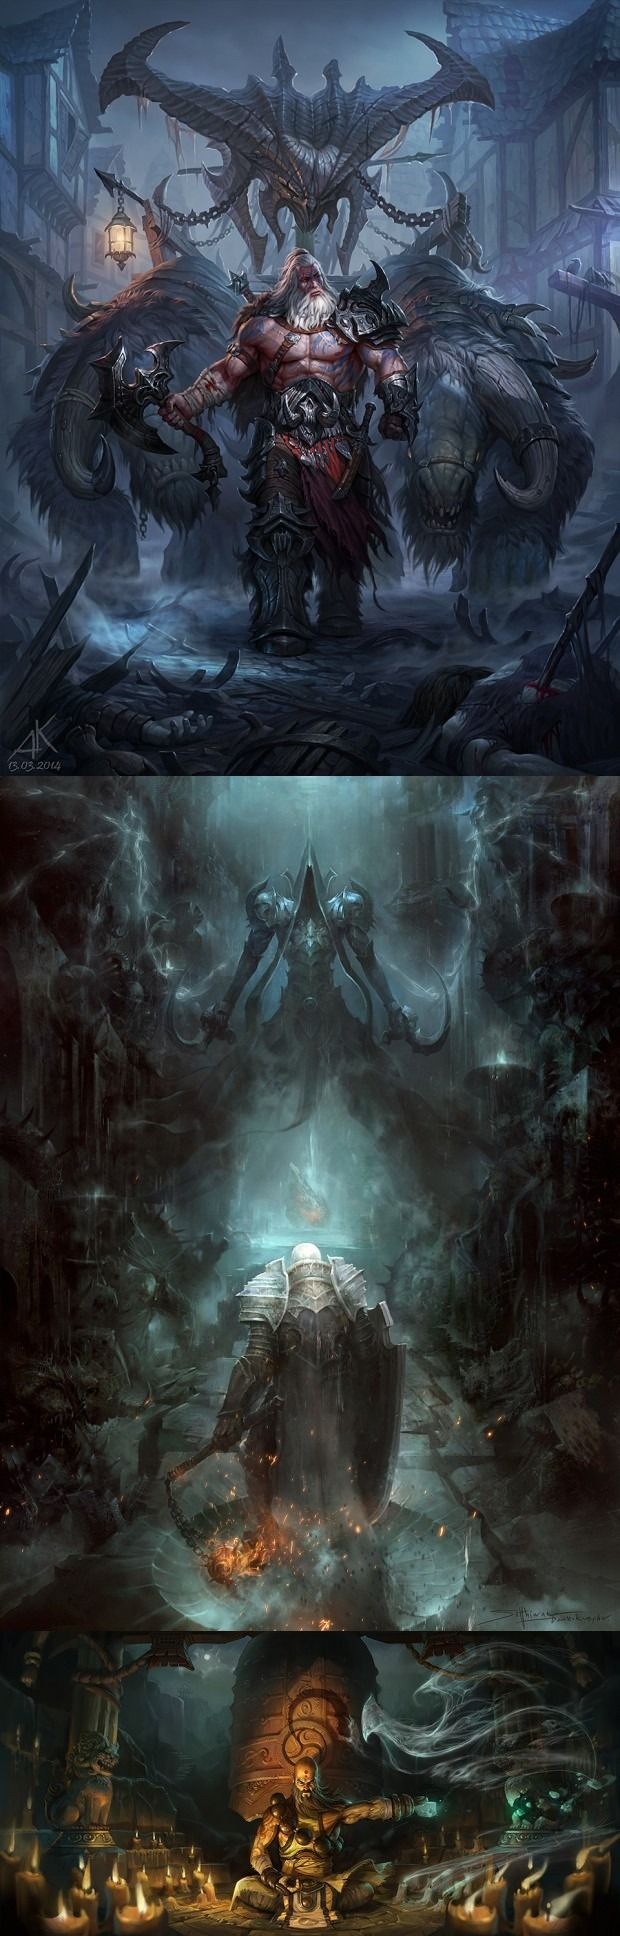 Diablo III: Reaper of Souls Fan Art Contest Winners